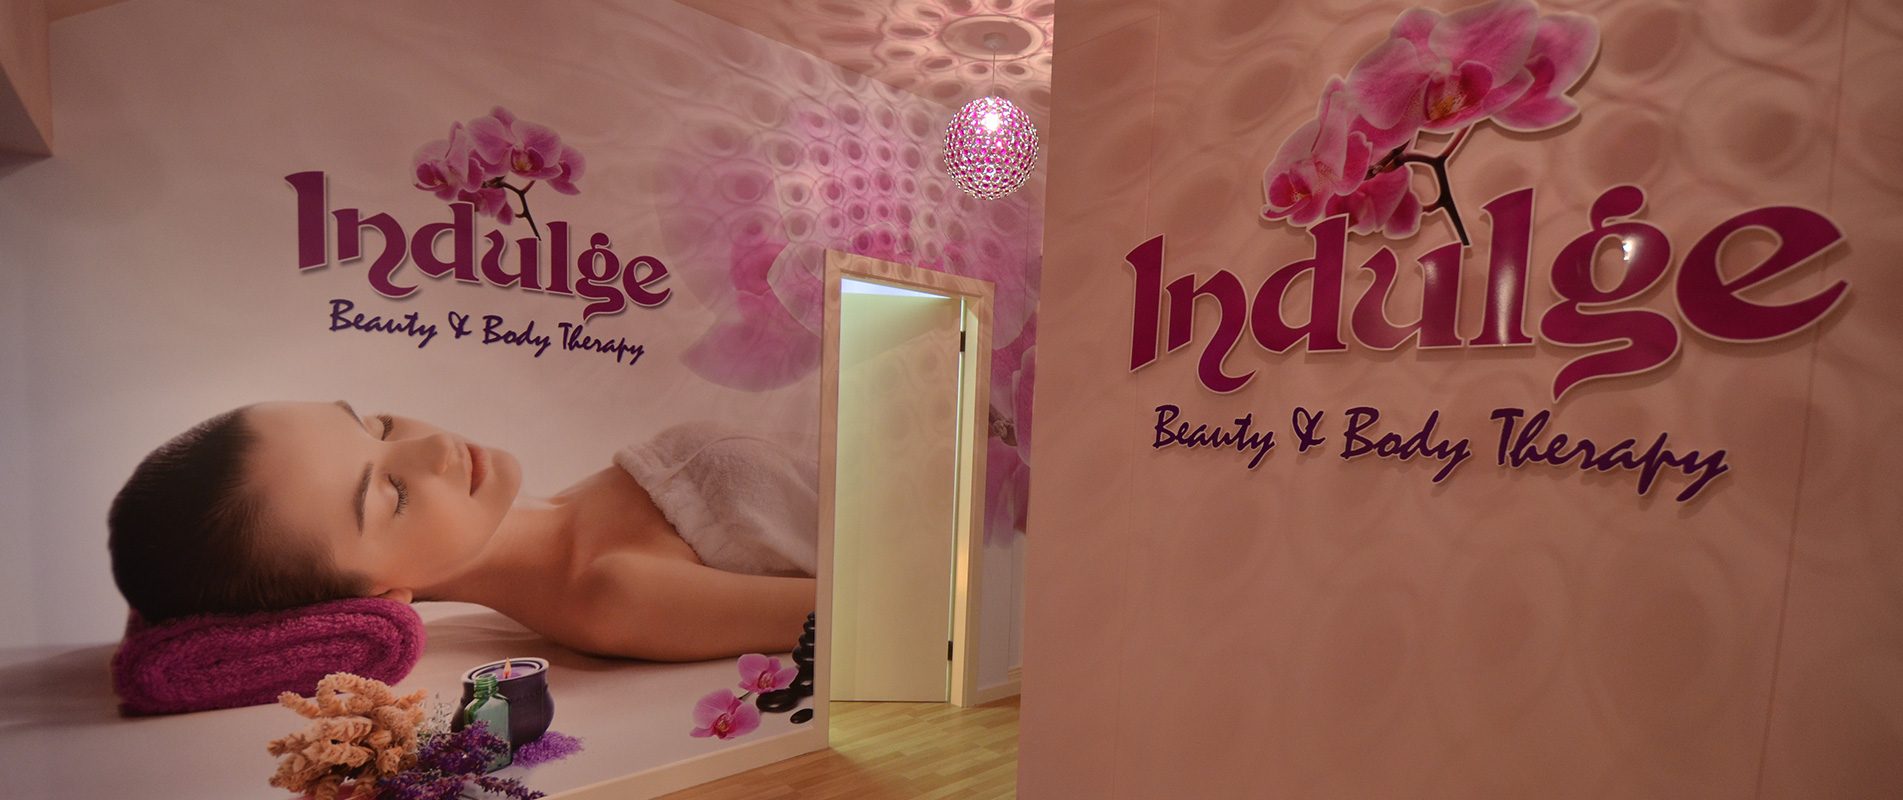 Wall-wraps-banner-image-2